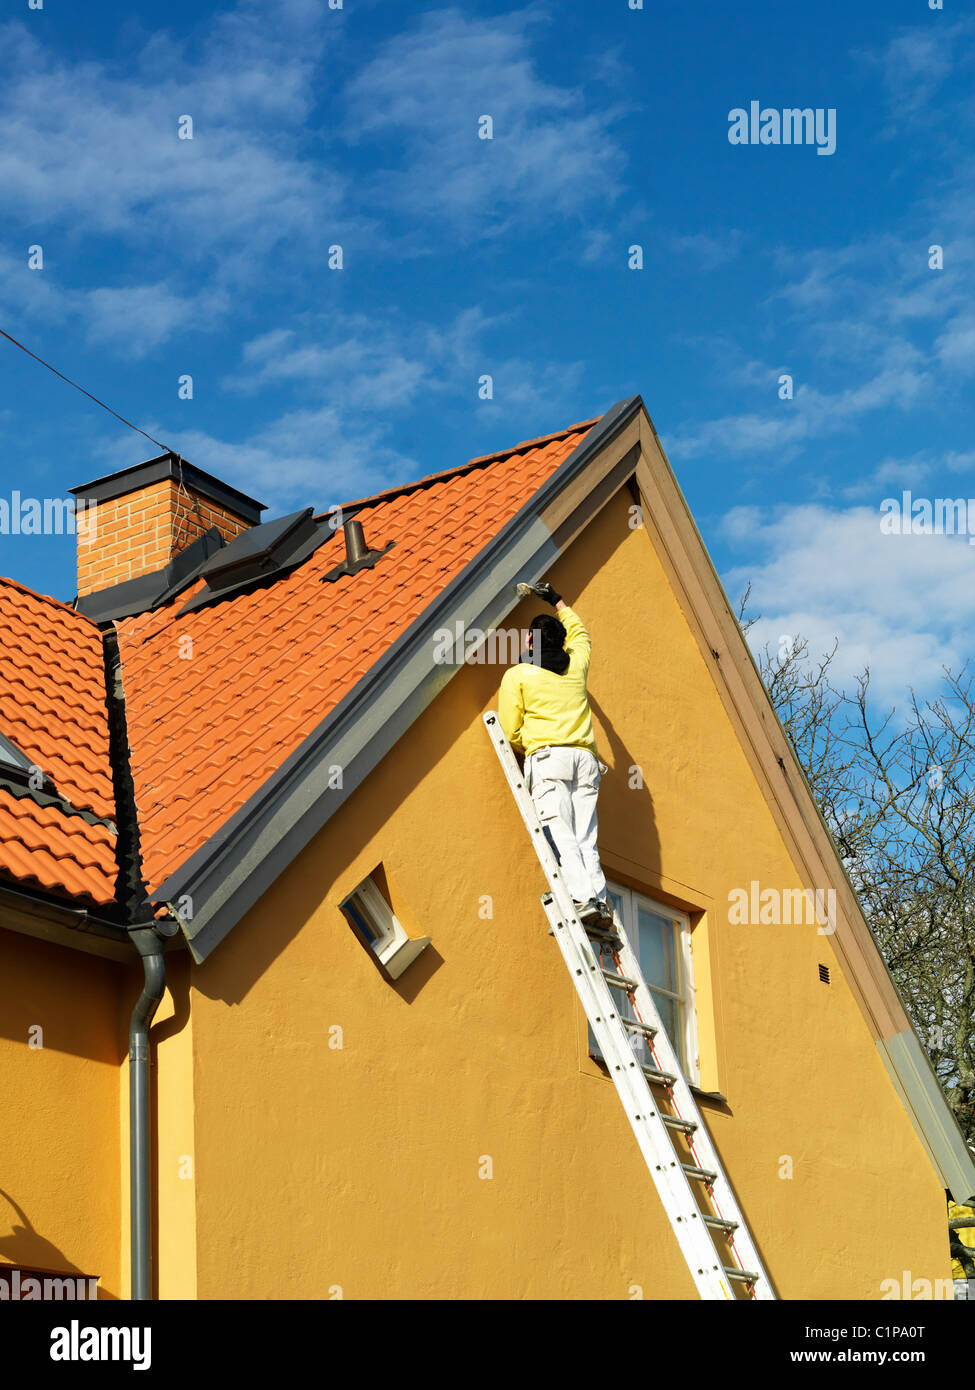 Man painting gable, low angle view - Stock Image